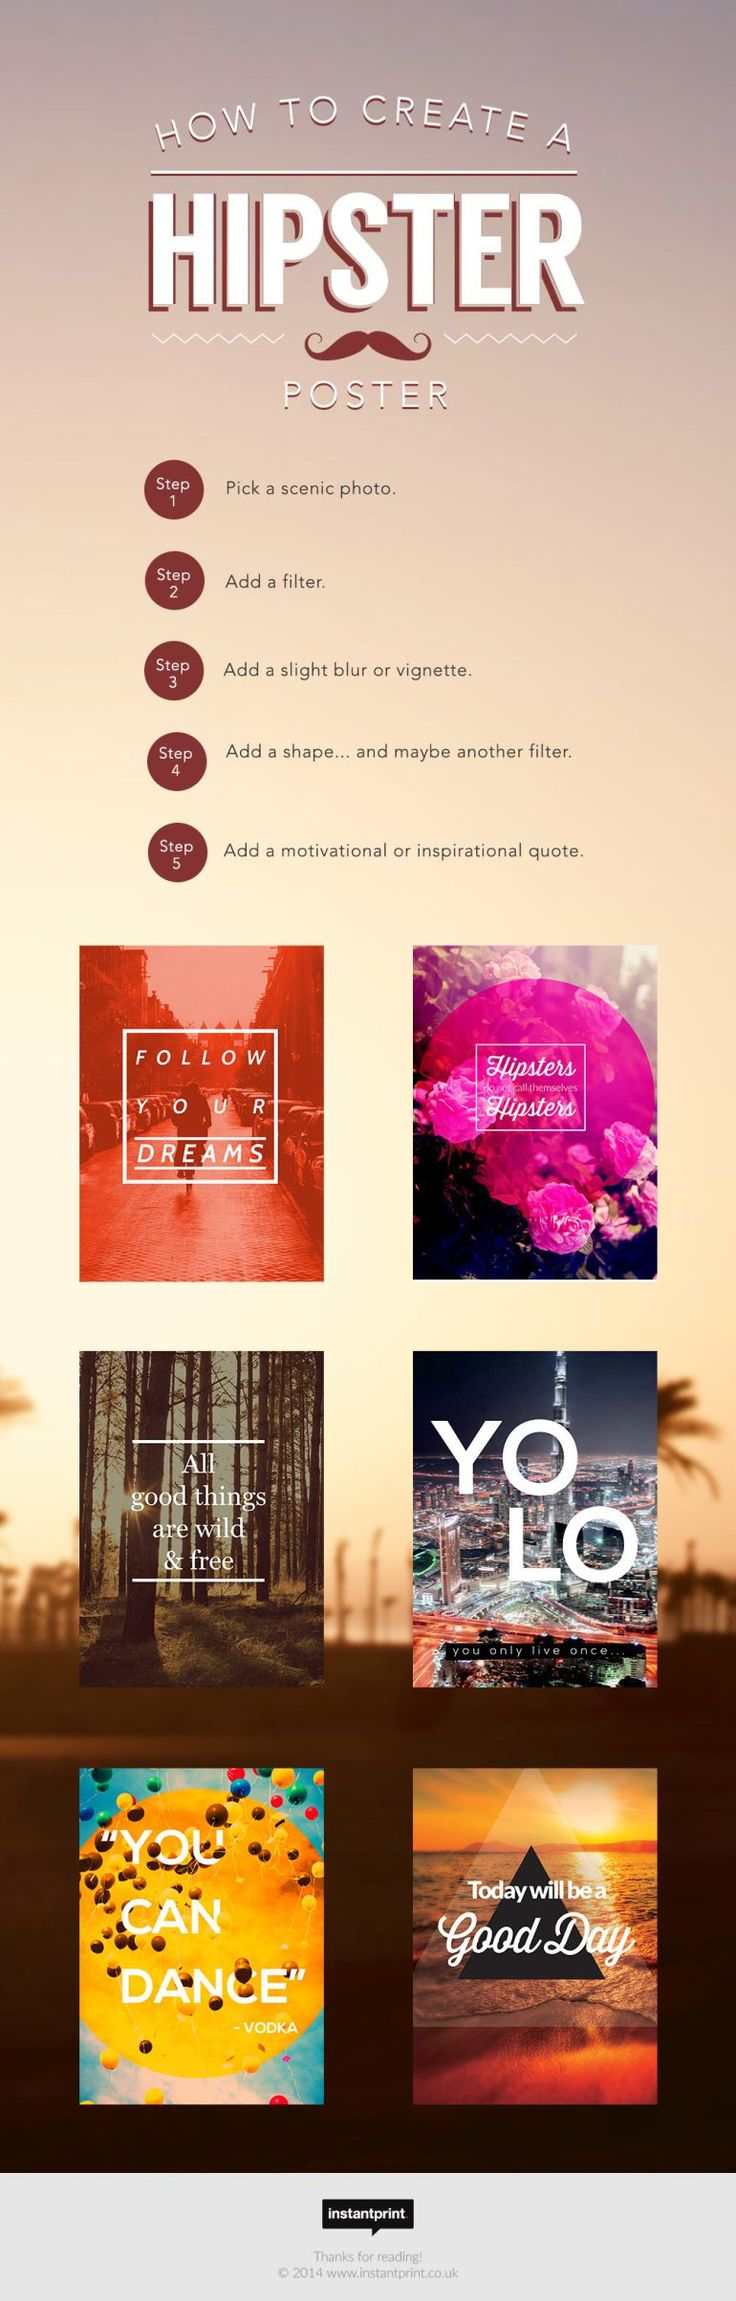 How to design a hipster style poster!